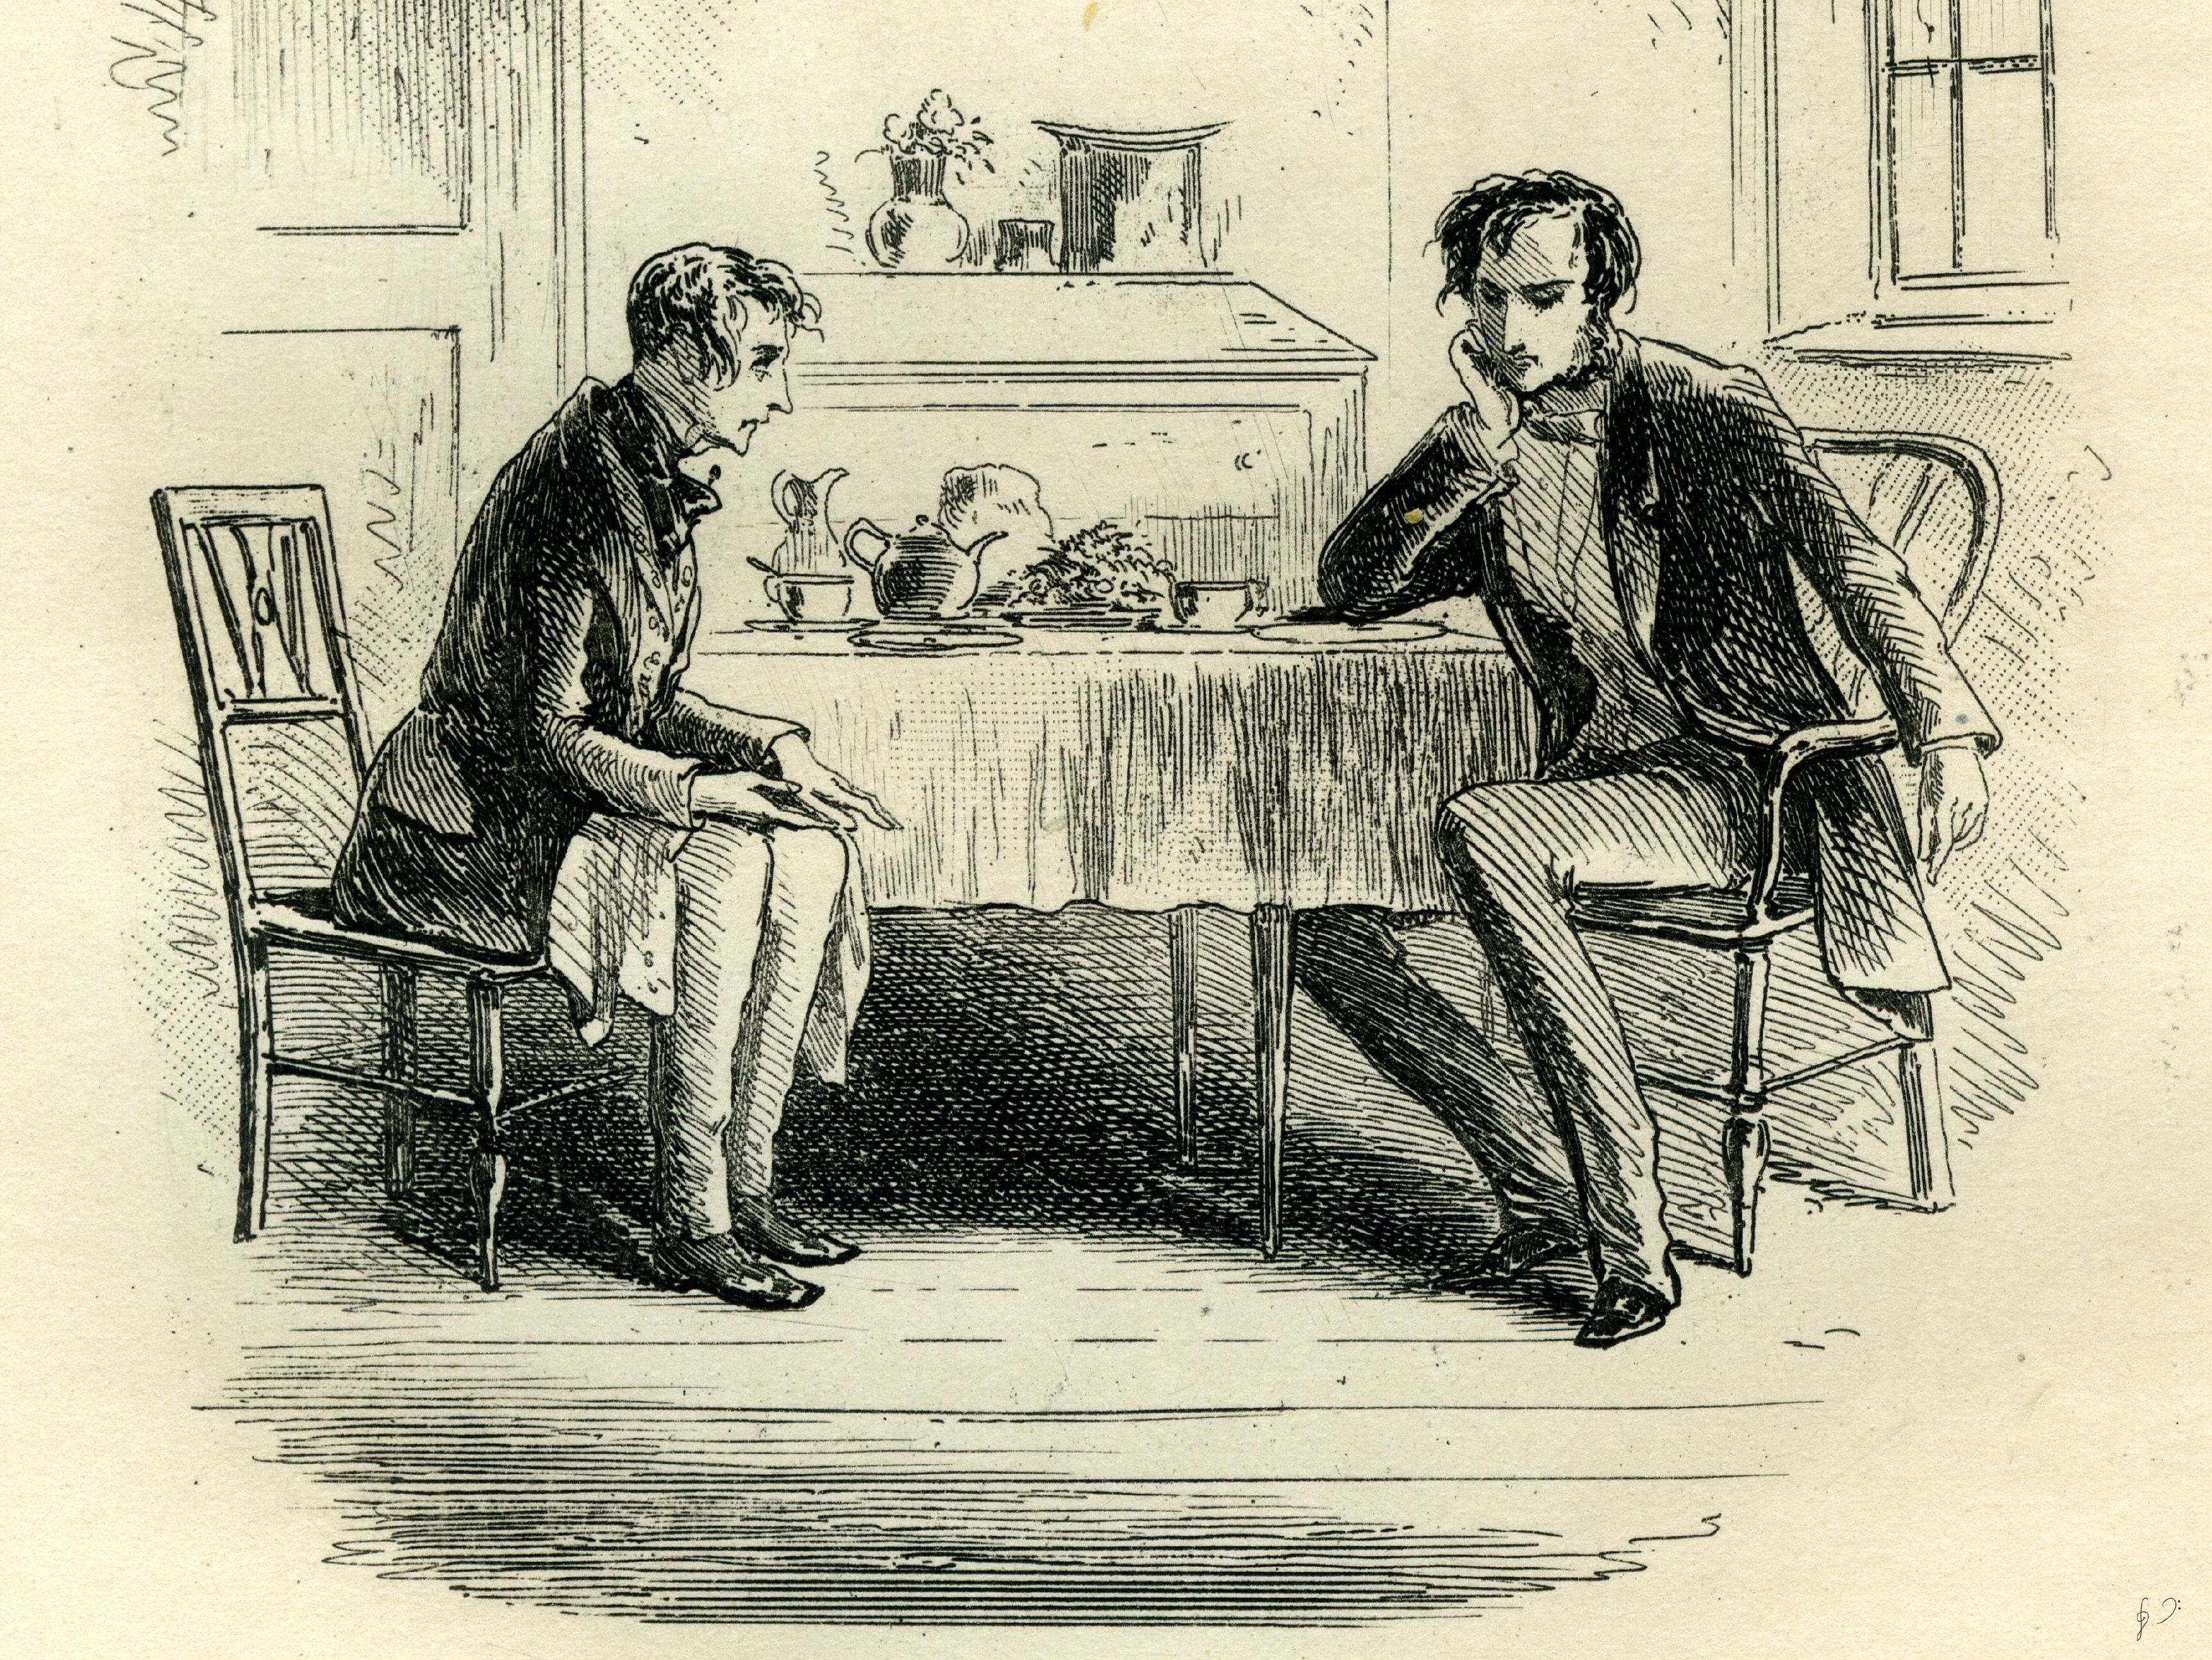 Coffee Or Tea: In Dickens' World, It Might Be A Choice Between Good And Evil